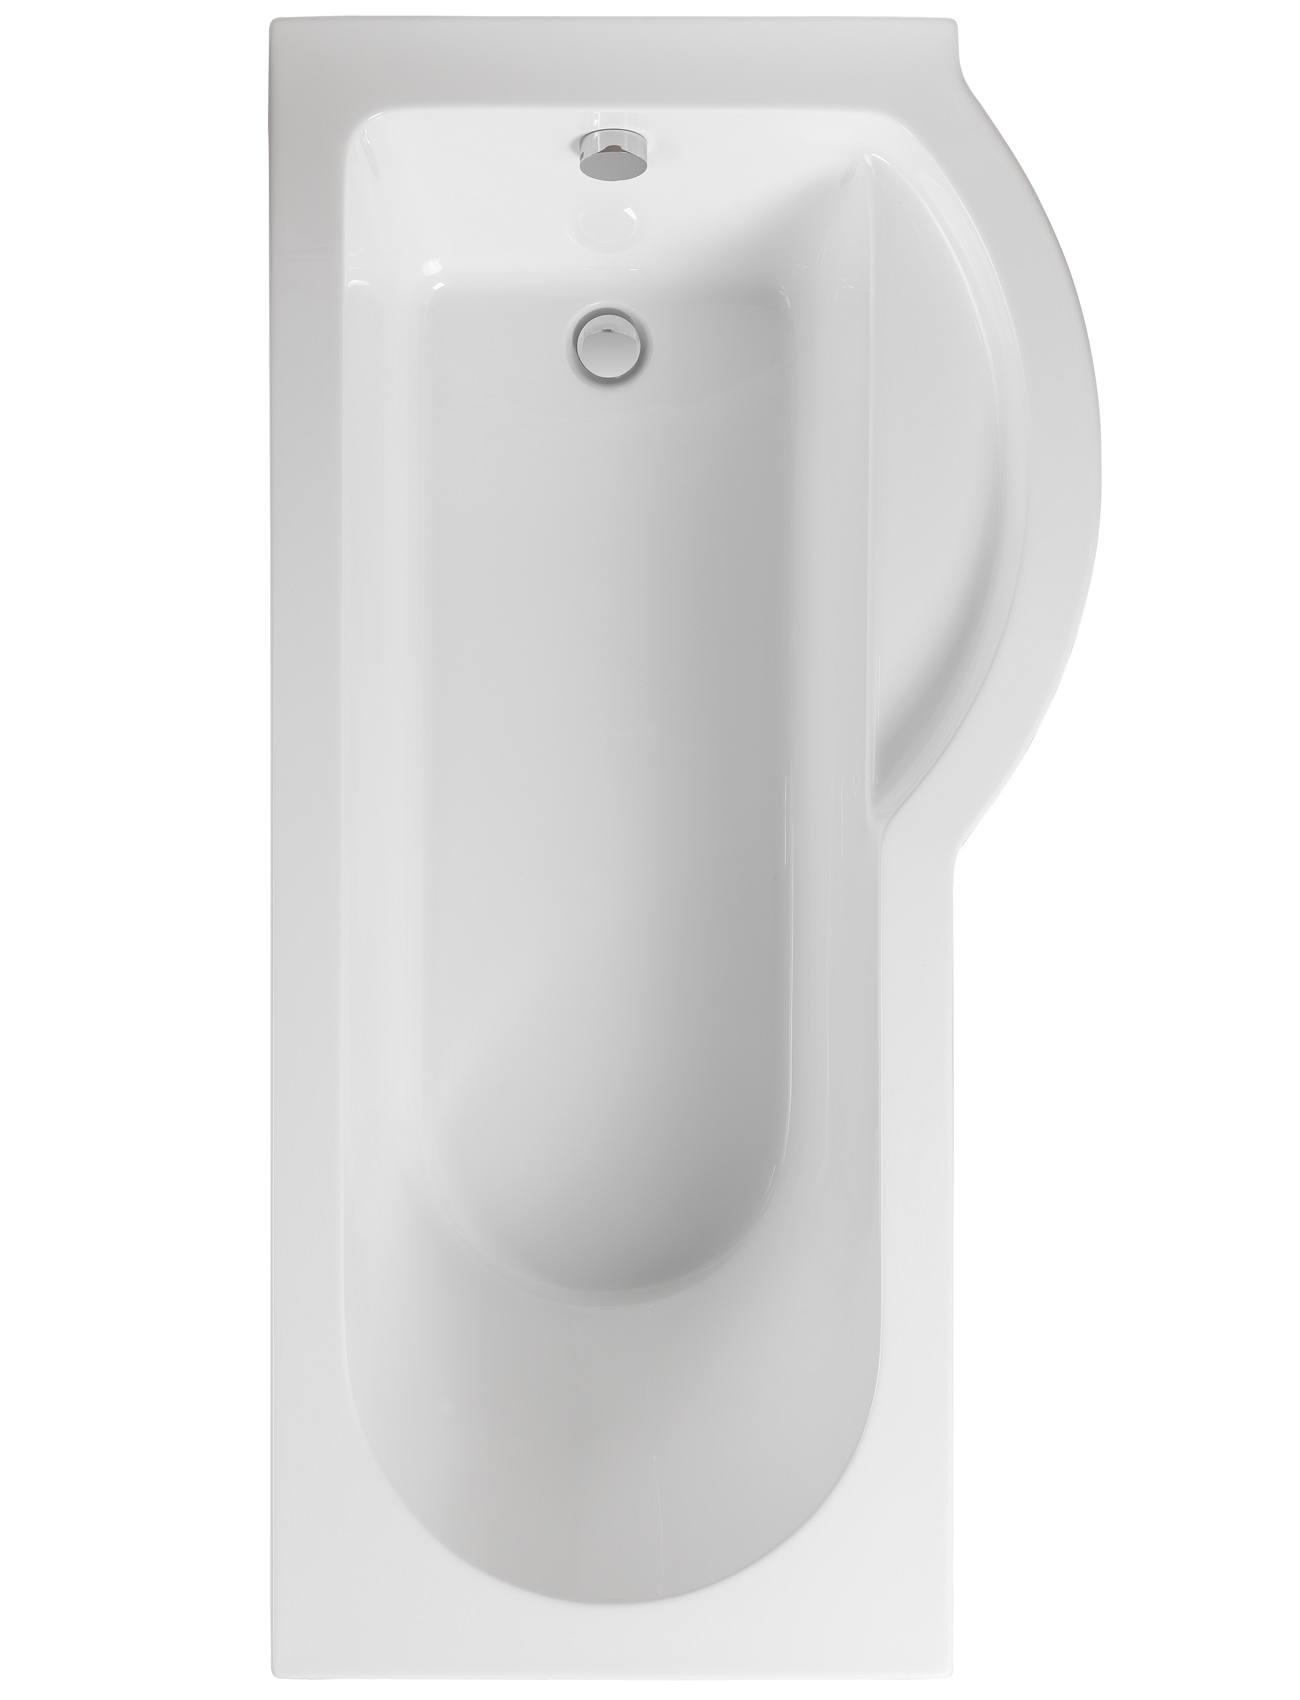 Pura Arco 1700 X 850mm Right Hand Shower Bath